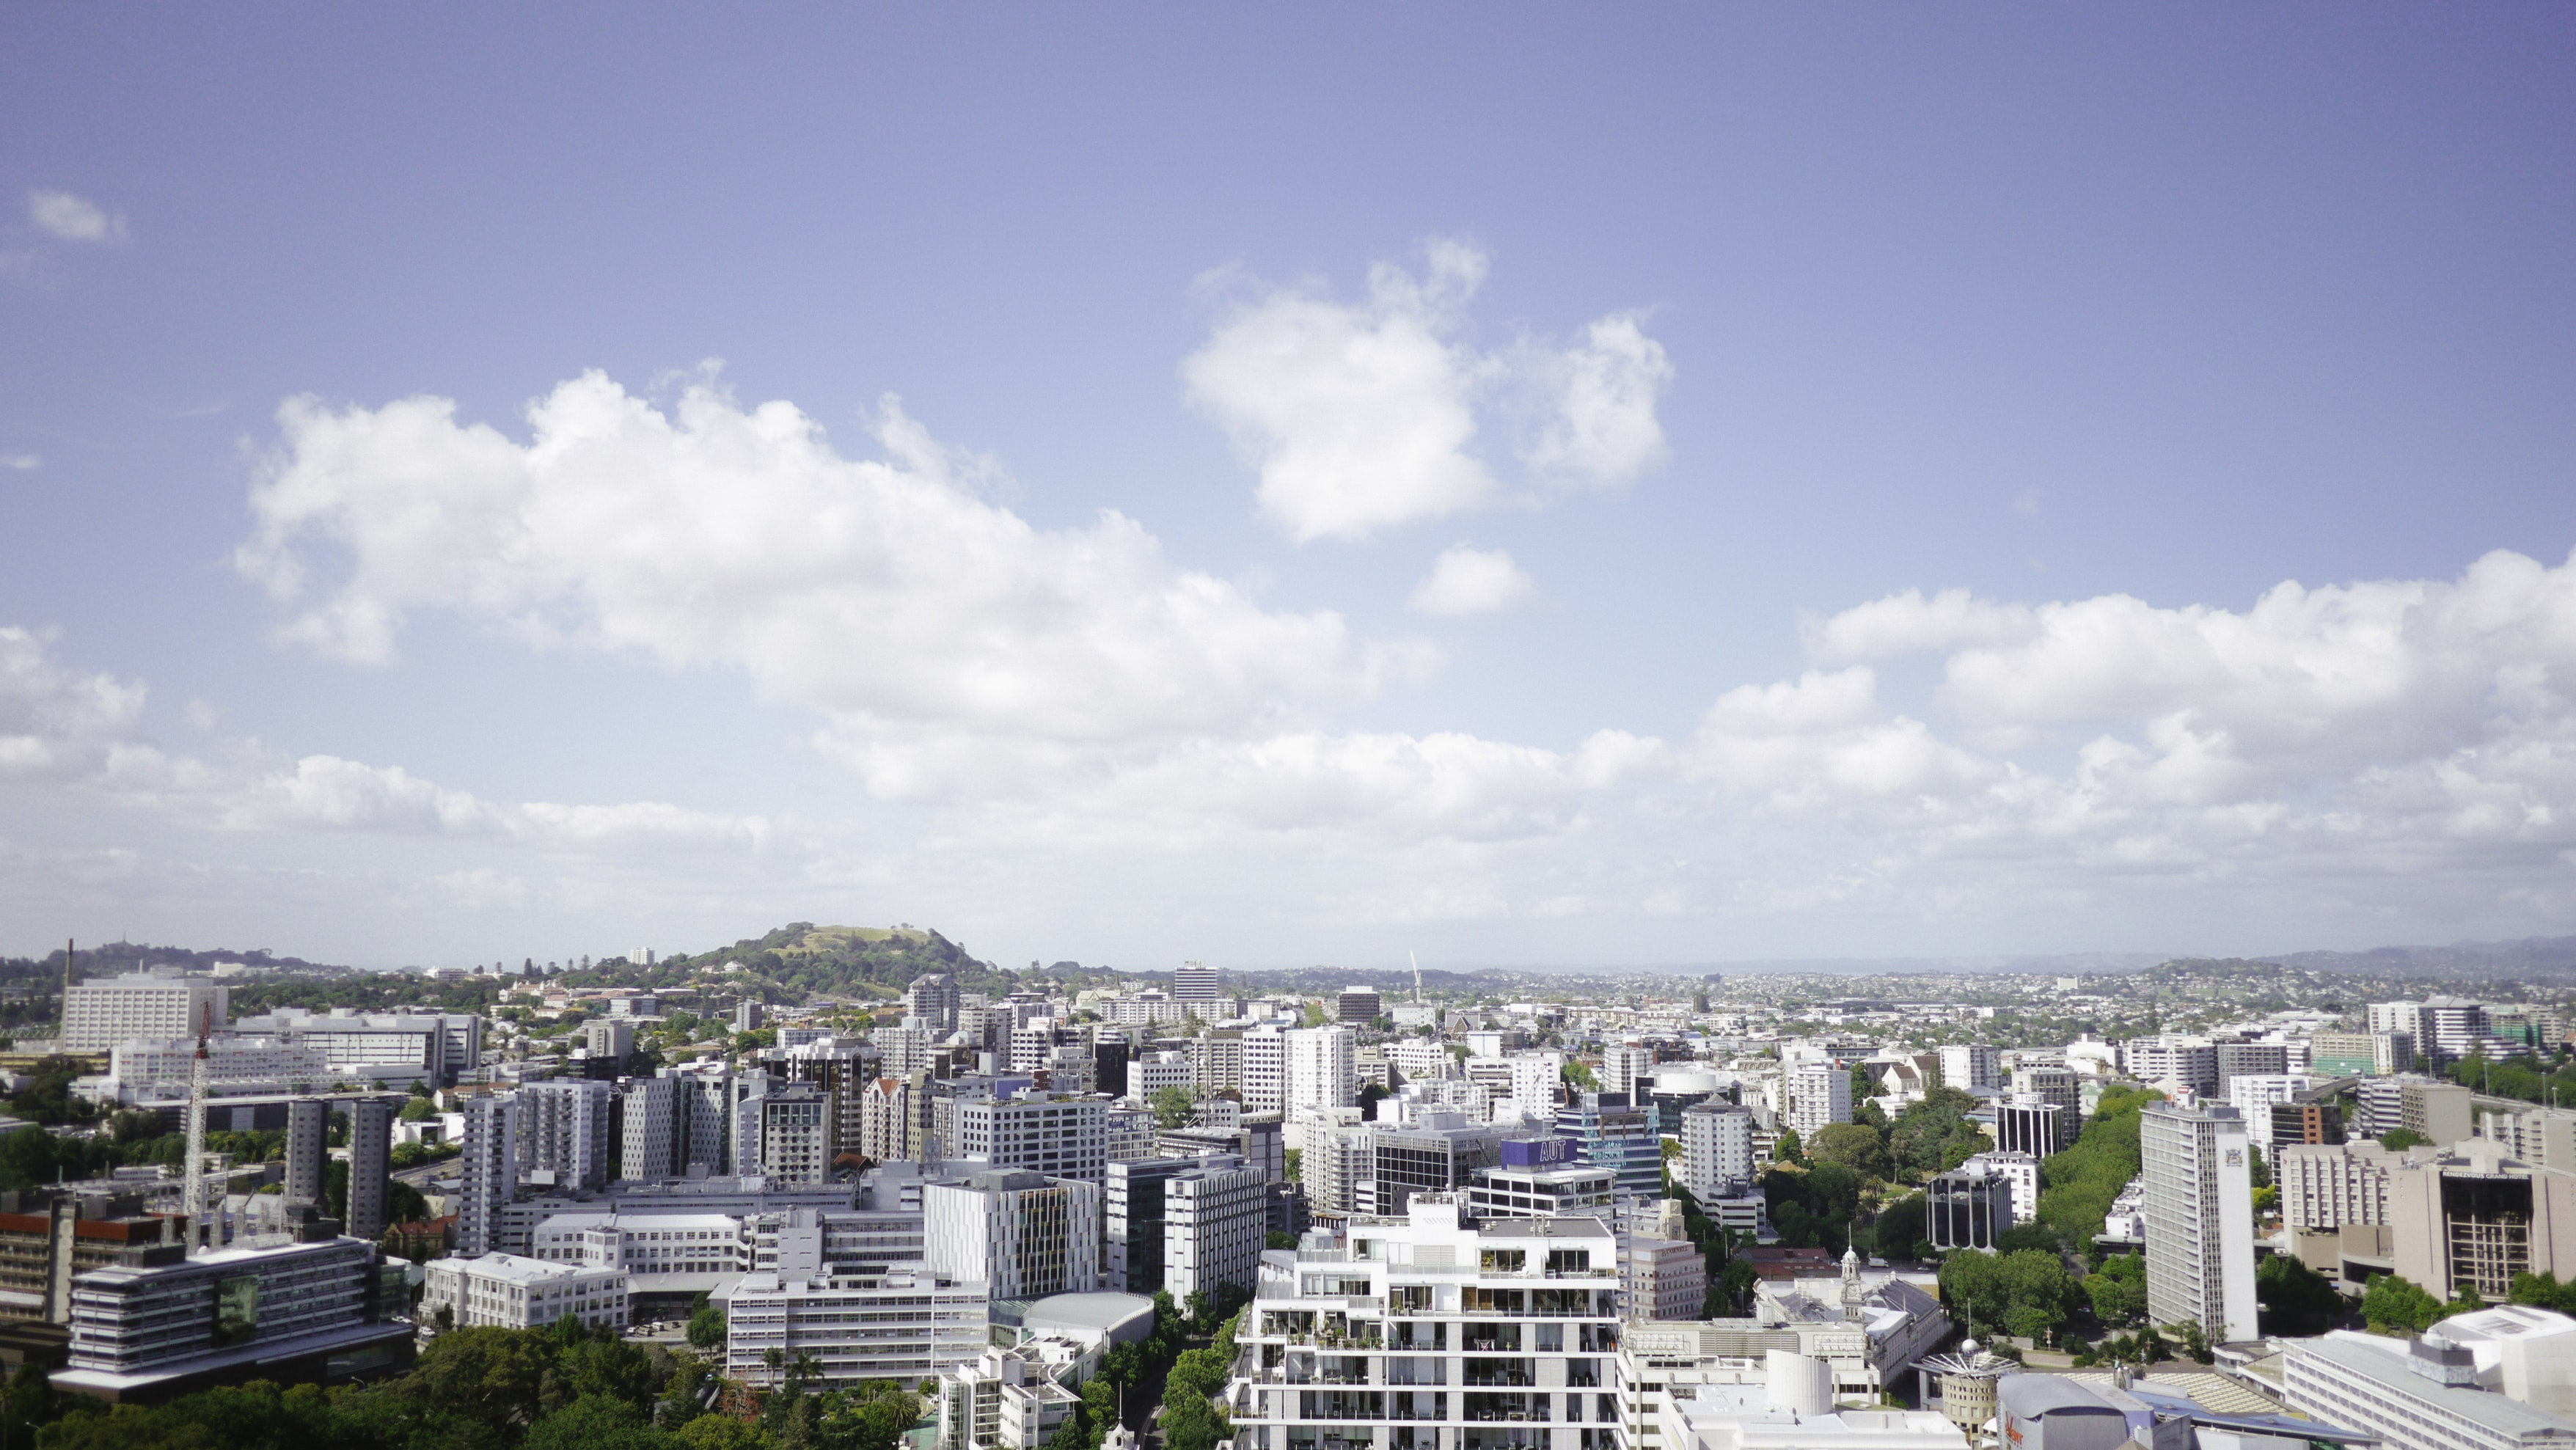 A panorama with office and residential buildings in a vast metropolis